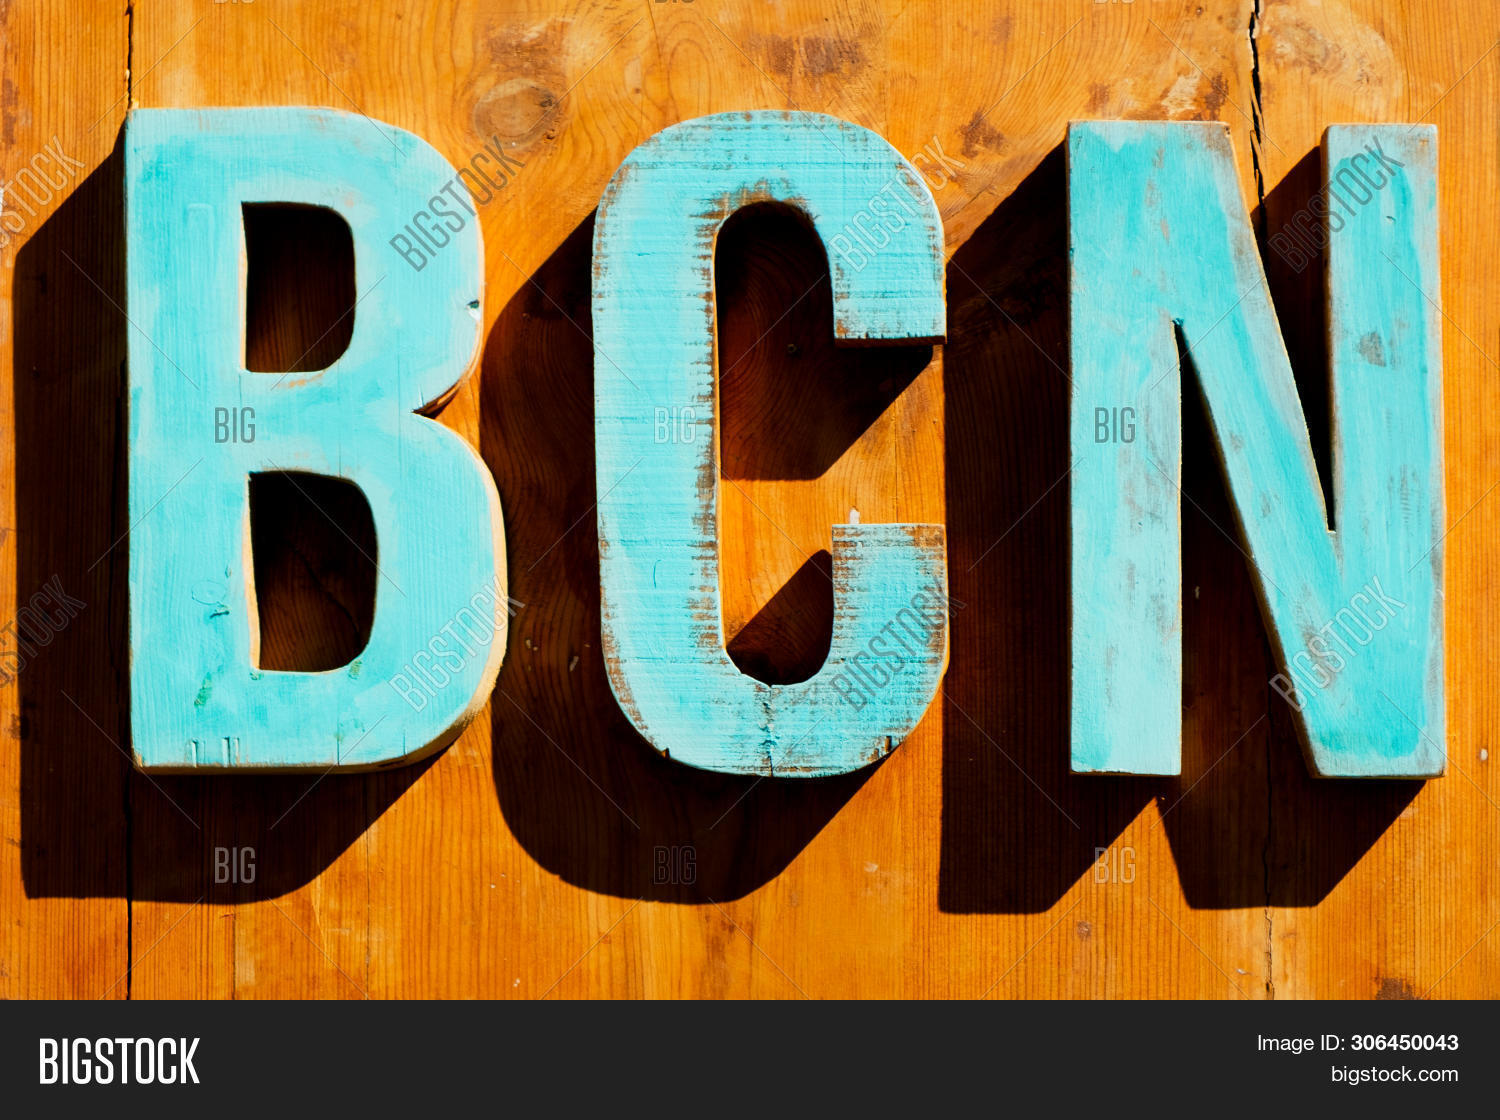 3d,abbreviation,ad,advertisement,advertising,barcelona,bcn,blue,capital,capital letter,catalan,catalonia,code,colors,concept,conceptual,design,dimension,dimensional,europe,european,green,horizontal,iata,iata code,letter,name,pale,pattern,placard,retro,rustic,sign,signboard,spain,spanish,symbol,text,three,three-dimensional,vintage,wooden,word